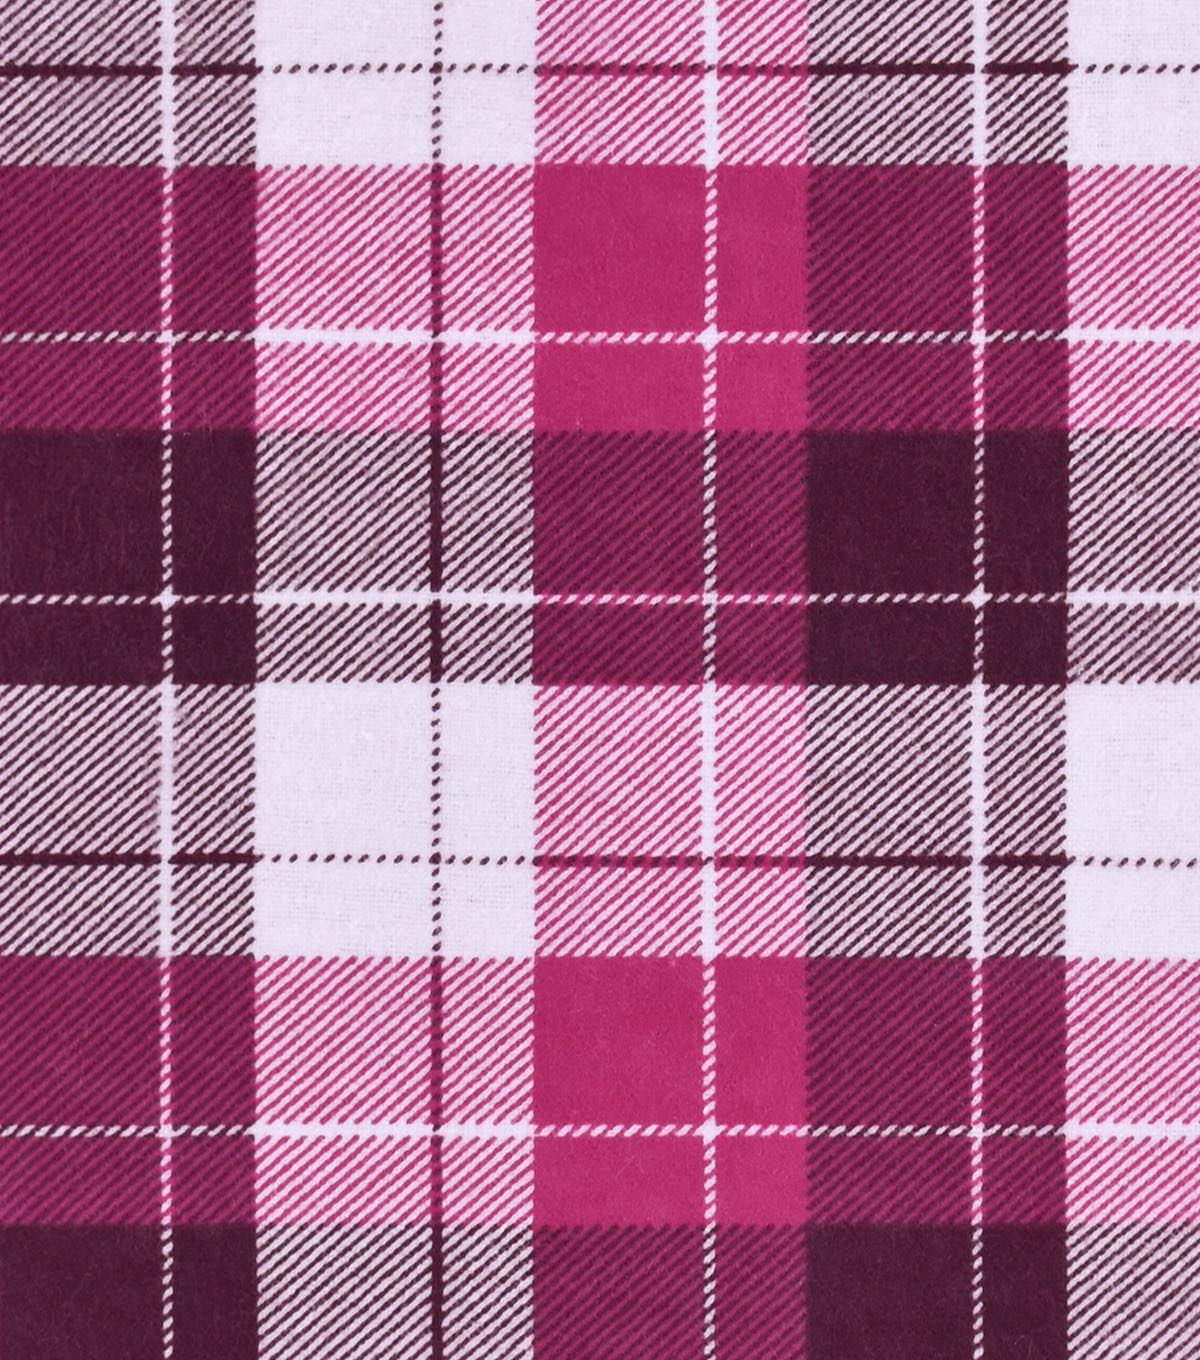 Snuggle Flannel Fabric -Pink Plaid